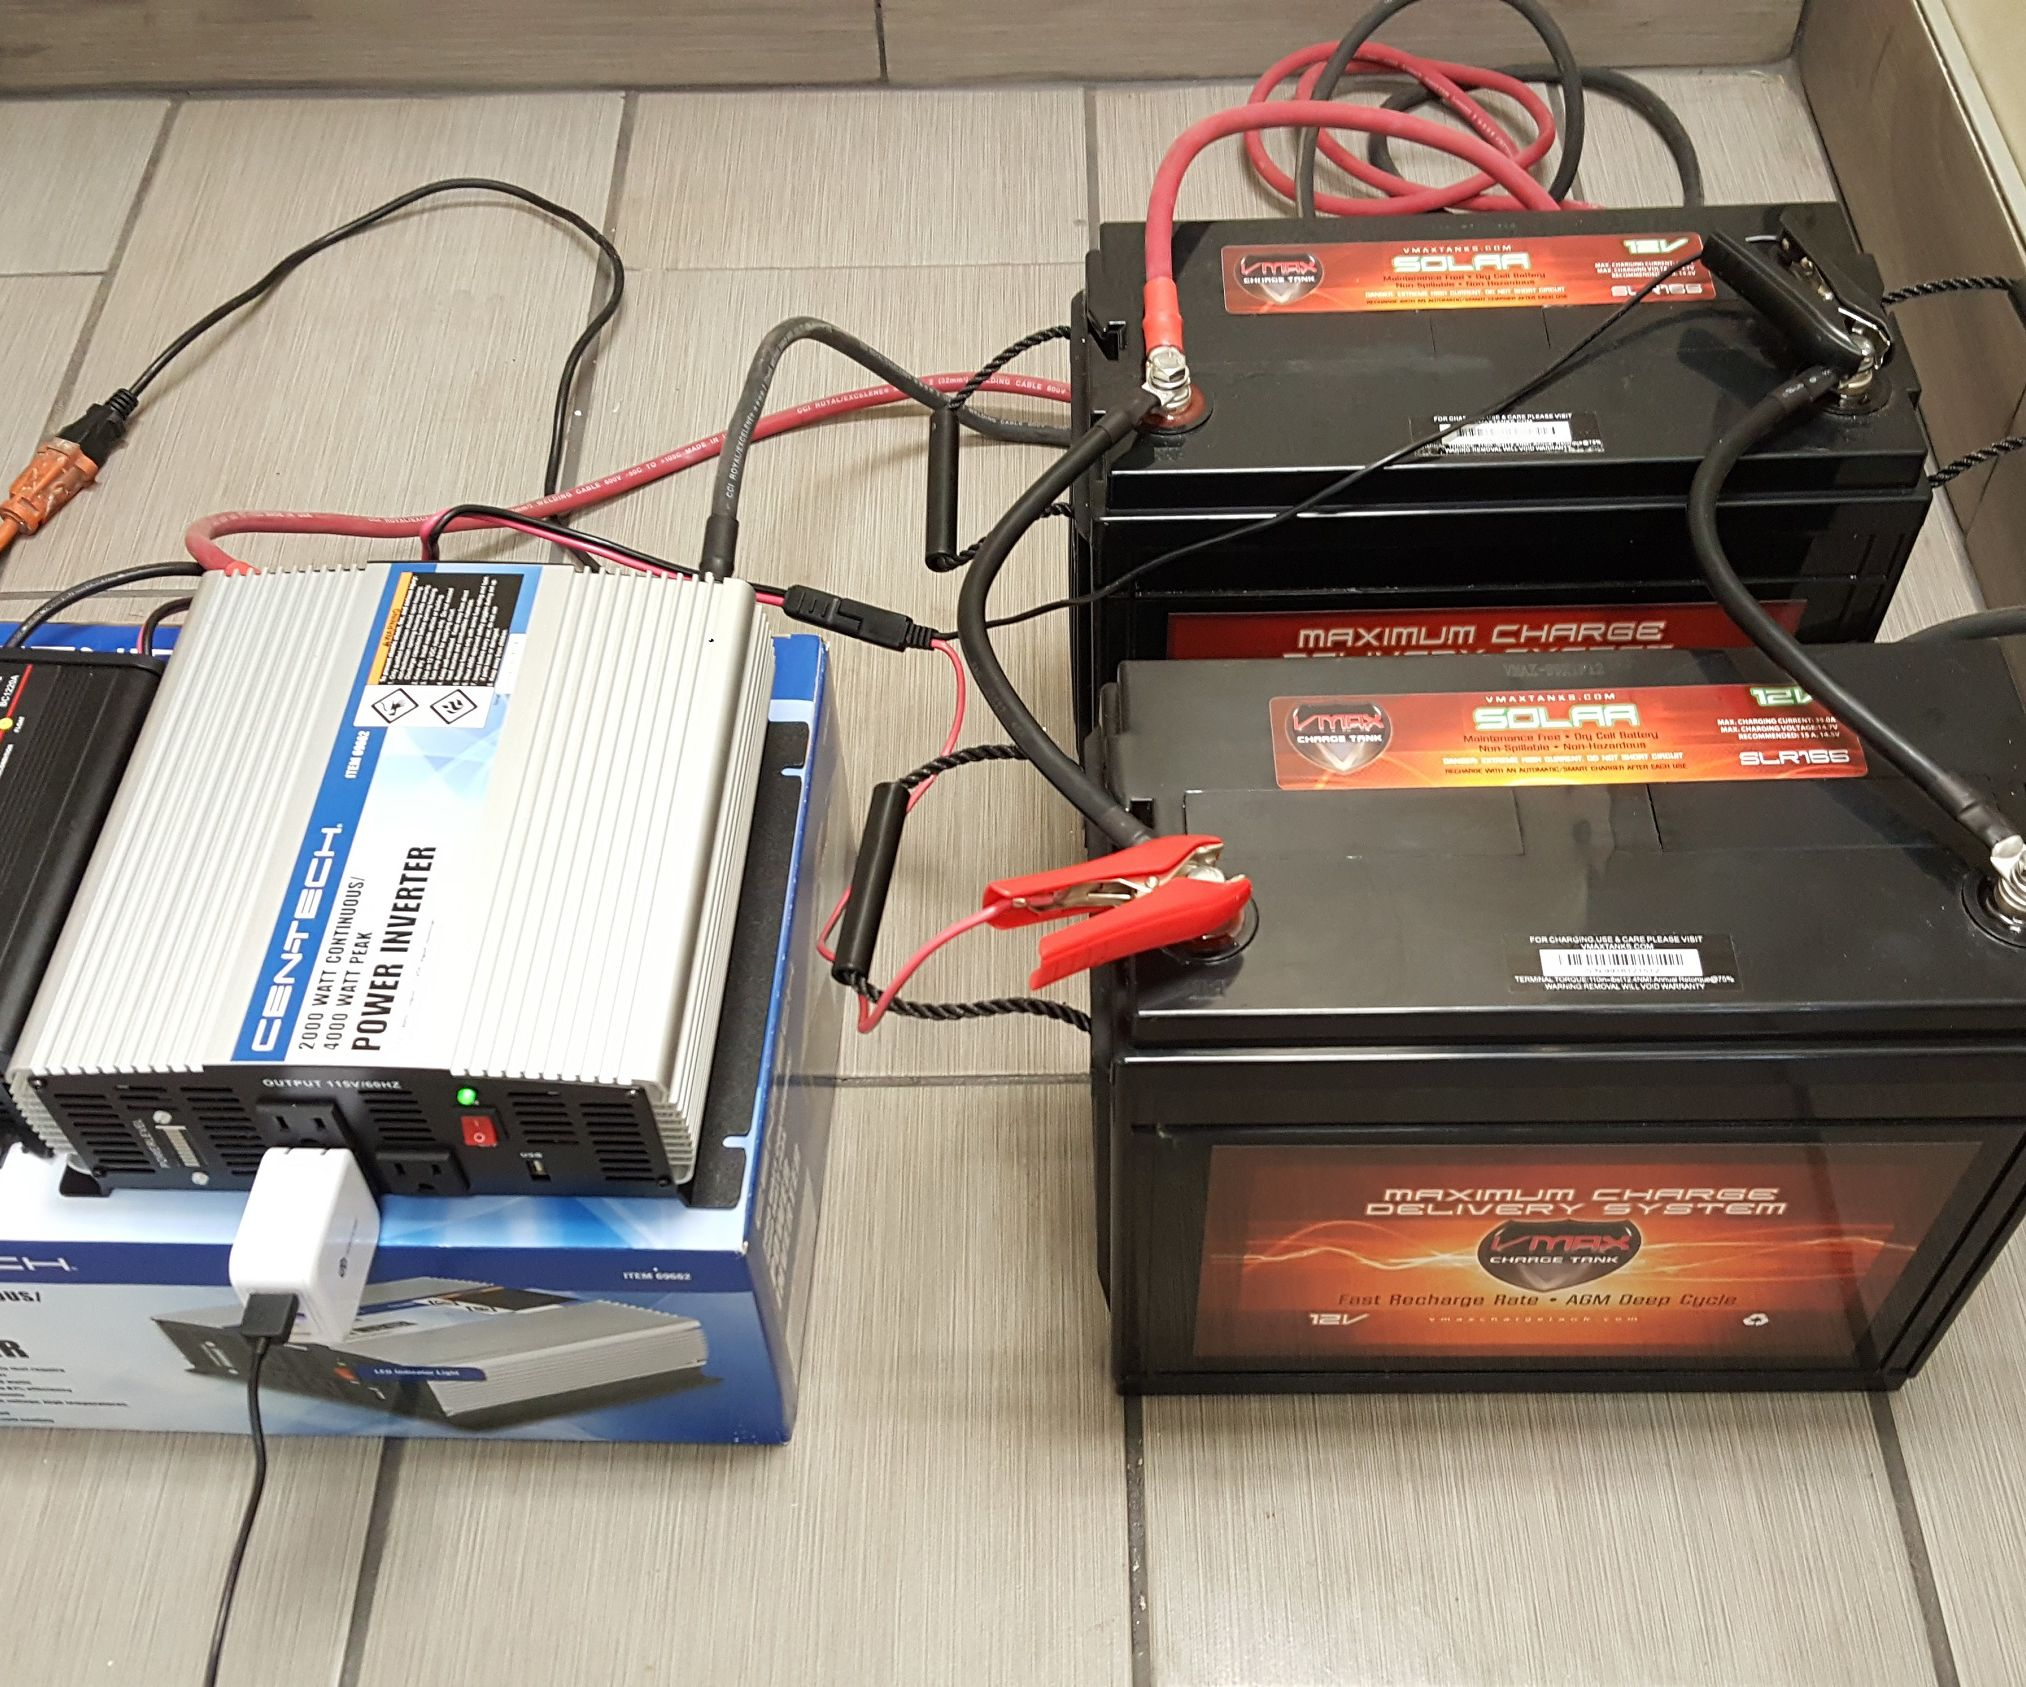 How to Build a Battery Backup Generator